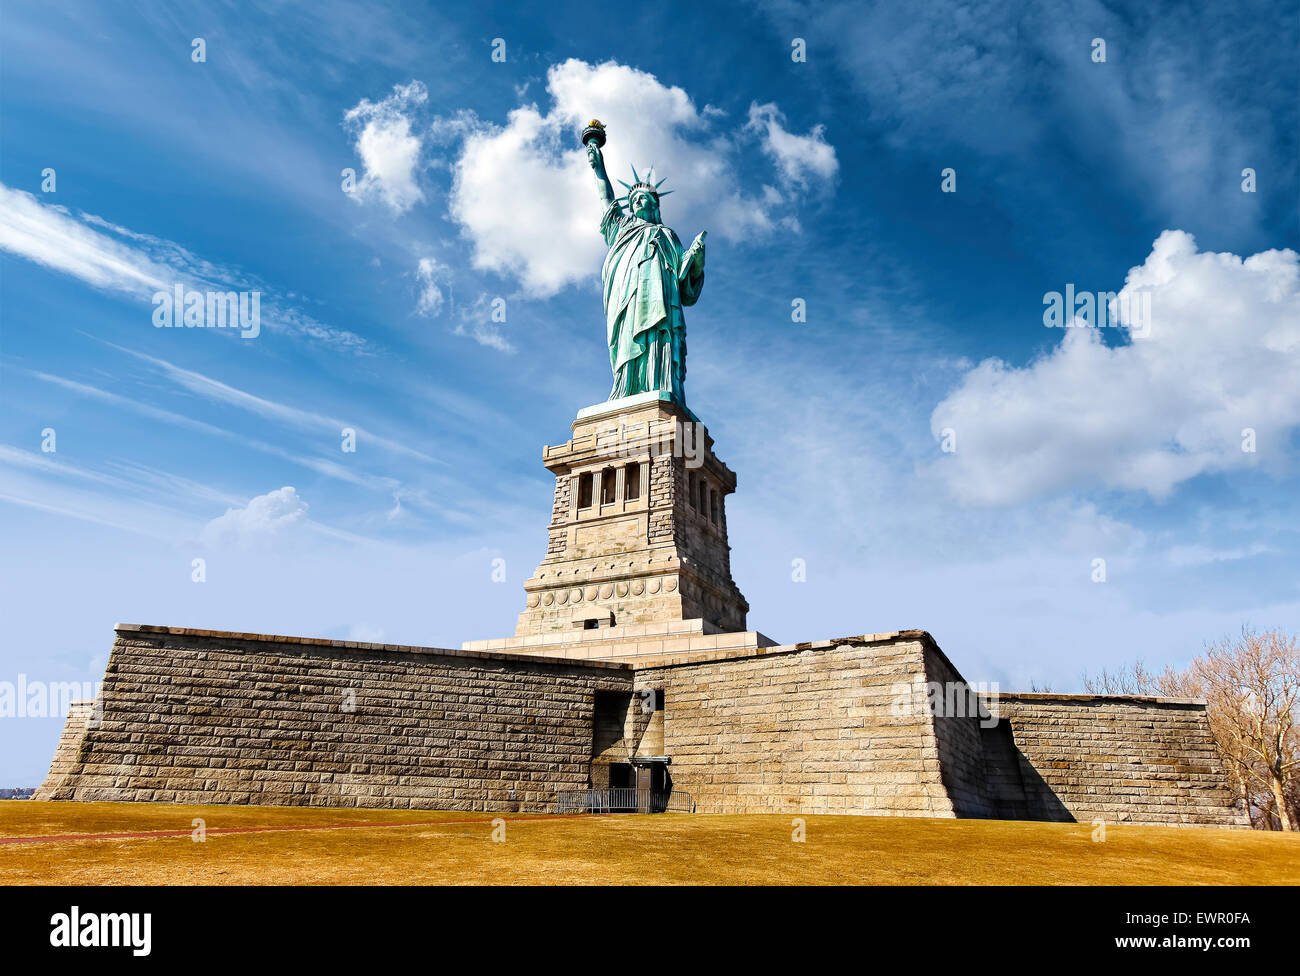 Statue of Liberty in New York City; USA. - Stock Image